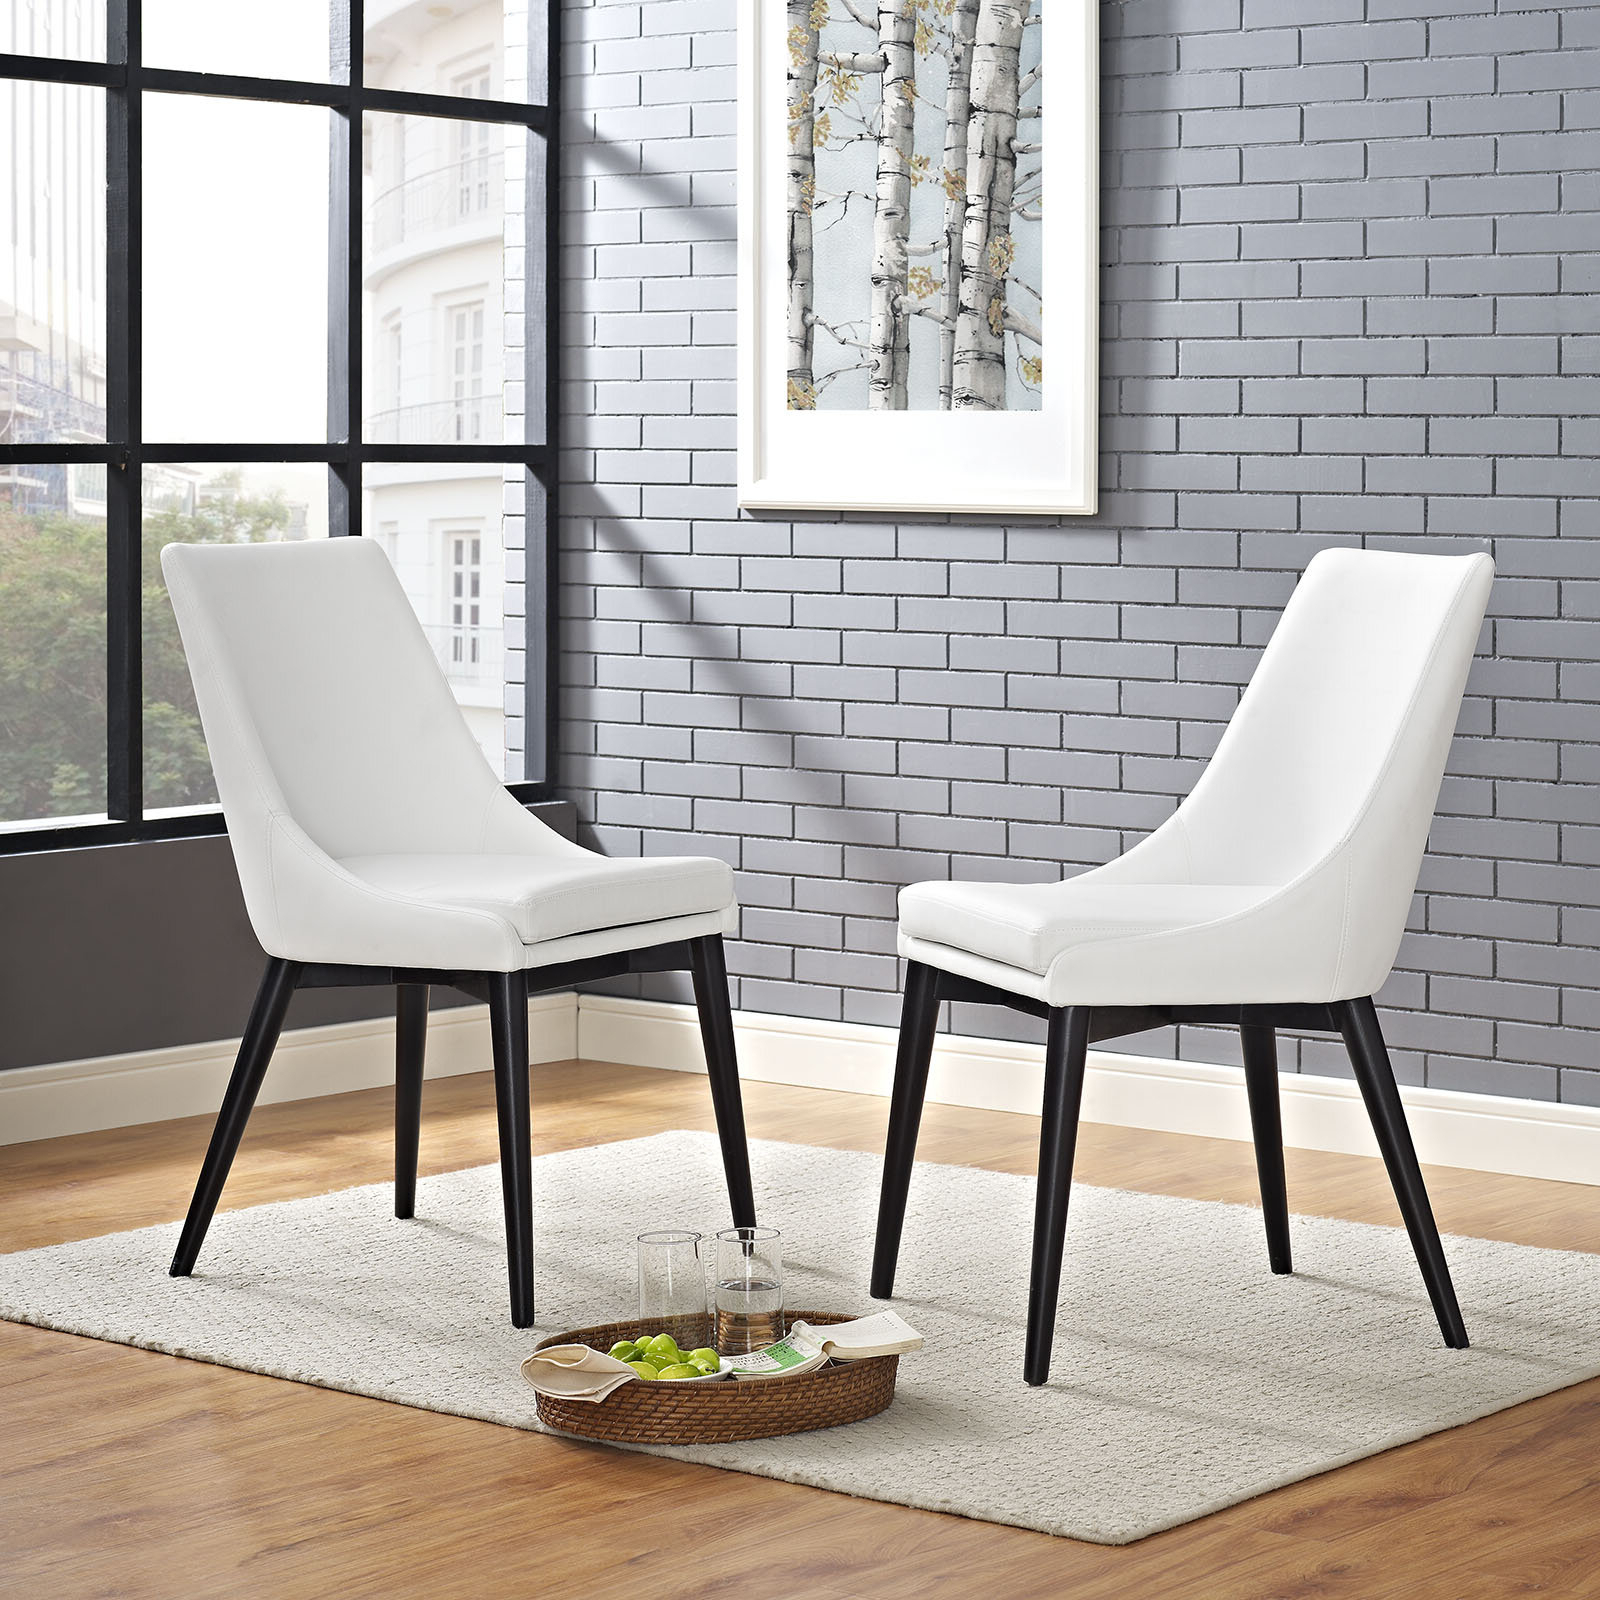 Most Popular Carlton Wood Leg Upholstered Dining Chairs Pertaining To Minton Upholstered Dining Chair (View 13 of 20)